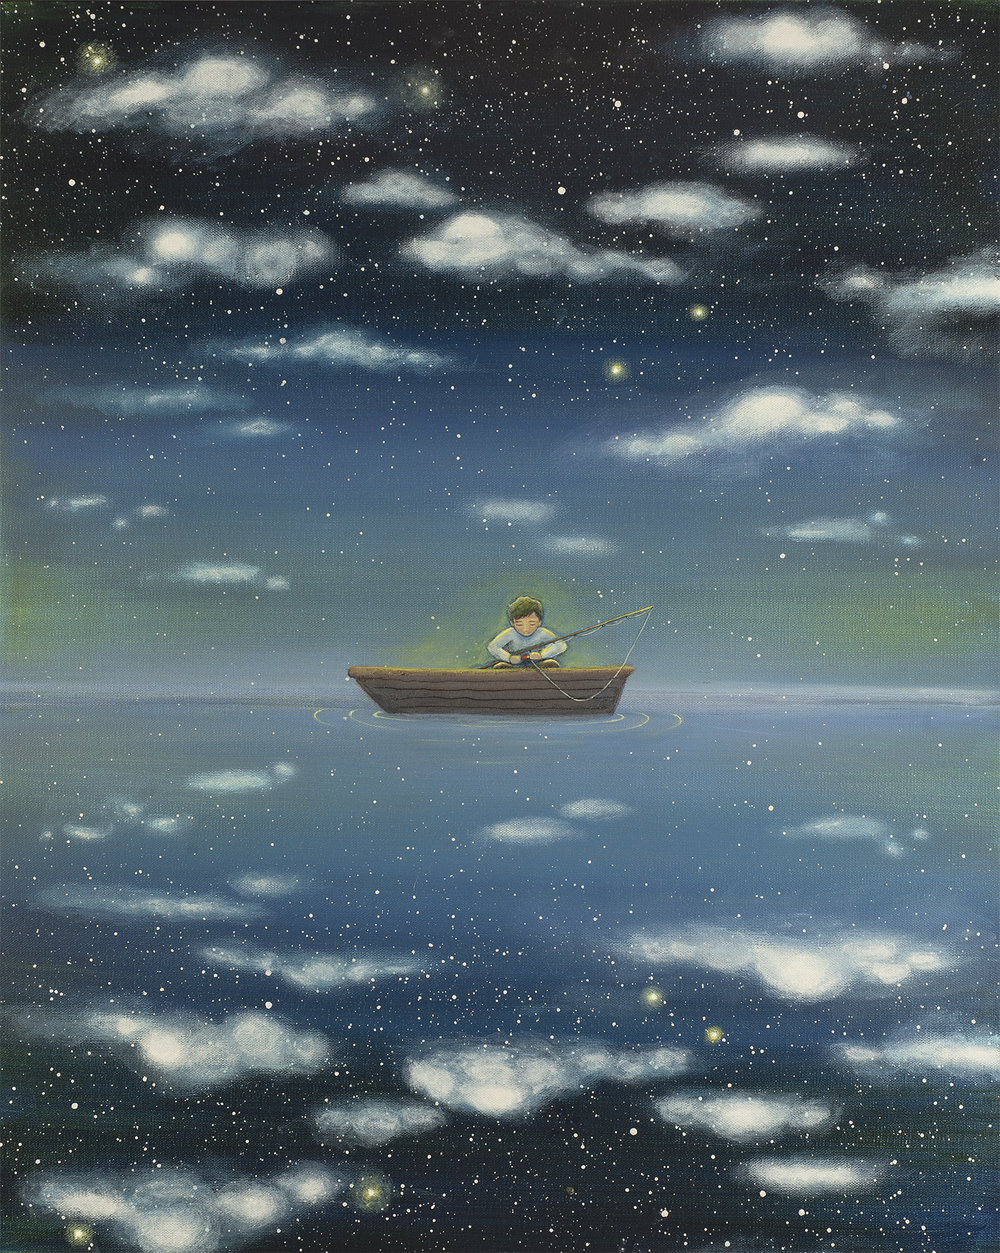 FISHING FOR STARS  20X24   Acrylic on Gallery Canvas  SOLD  A reflection lies between heaven and earth—smooth as a pool of glass. It's no wonder a boy mistook it for a lake. He came to the In Between searching for Bluegill Bream and Largemouth Bass. Won't he be surprised when he catches stars instead! Stars, moons... maybe even a world or two. Anything is possible in the In Between.